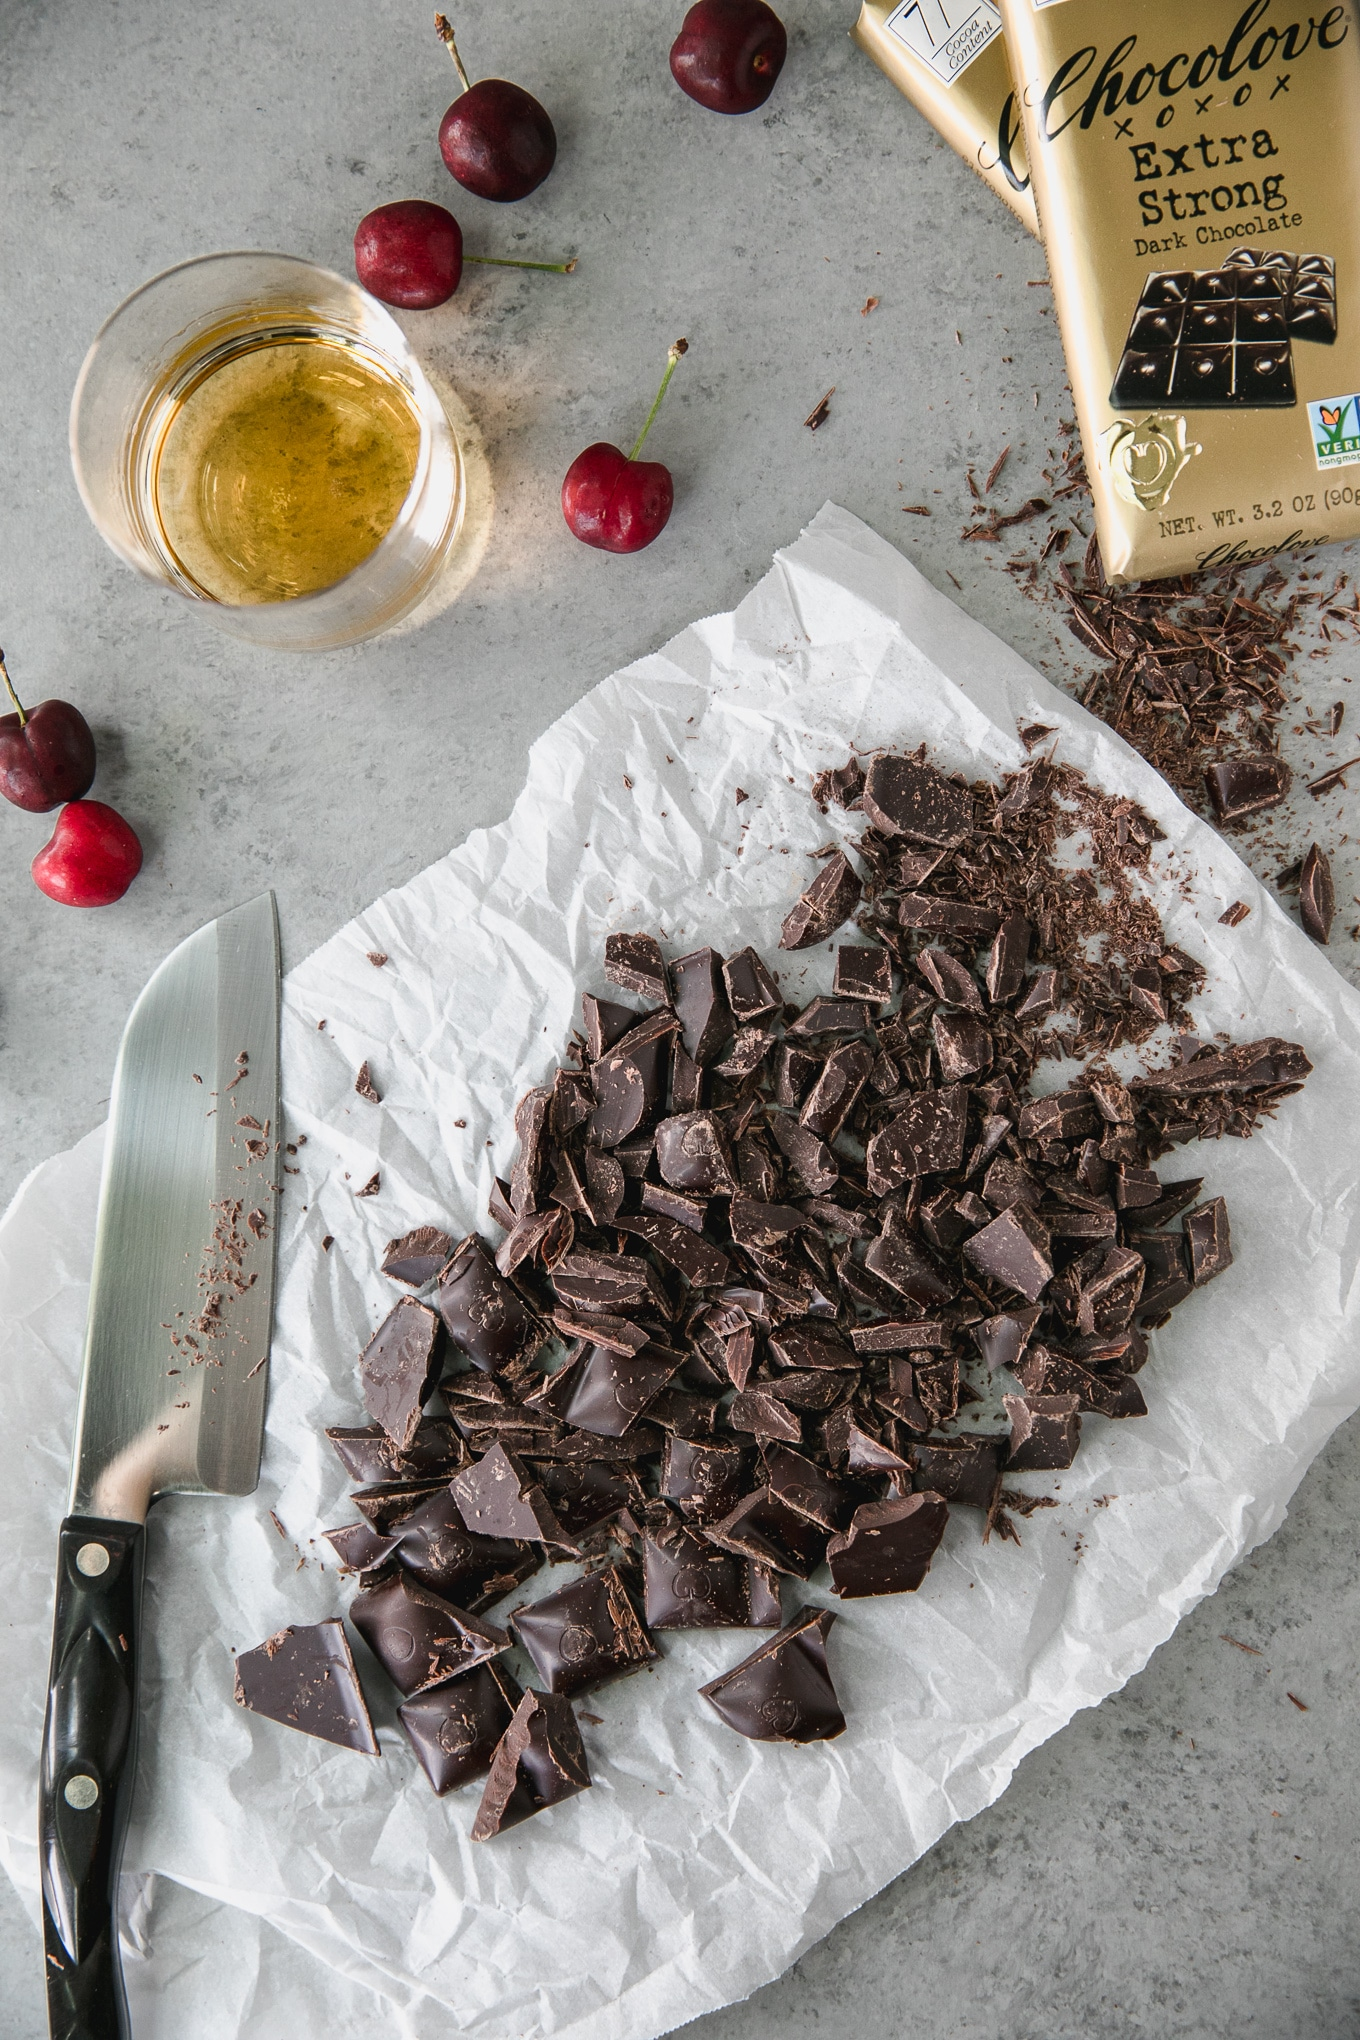 Overhead shot of a pile of chopped dark chocolate with a knife next to it as well as fresh cherries, a glass of bourbon, and a dark chocolate ba